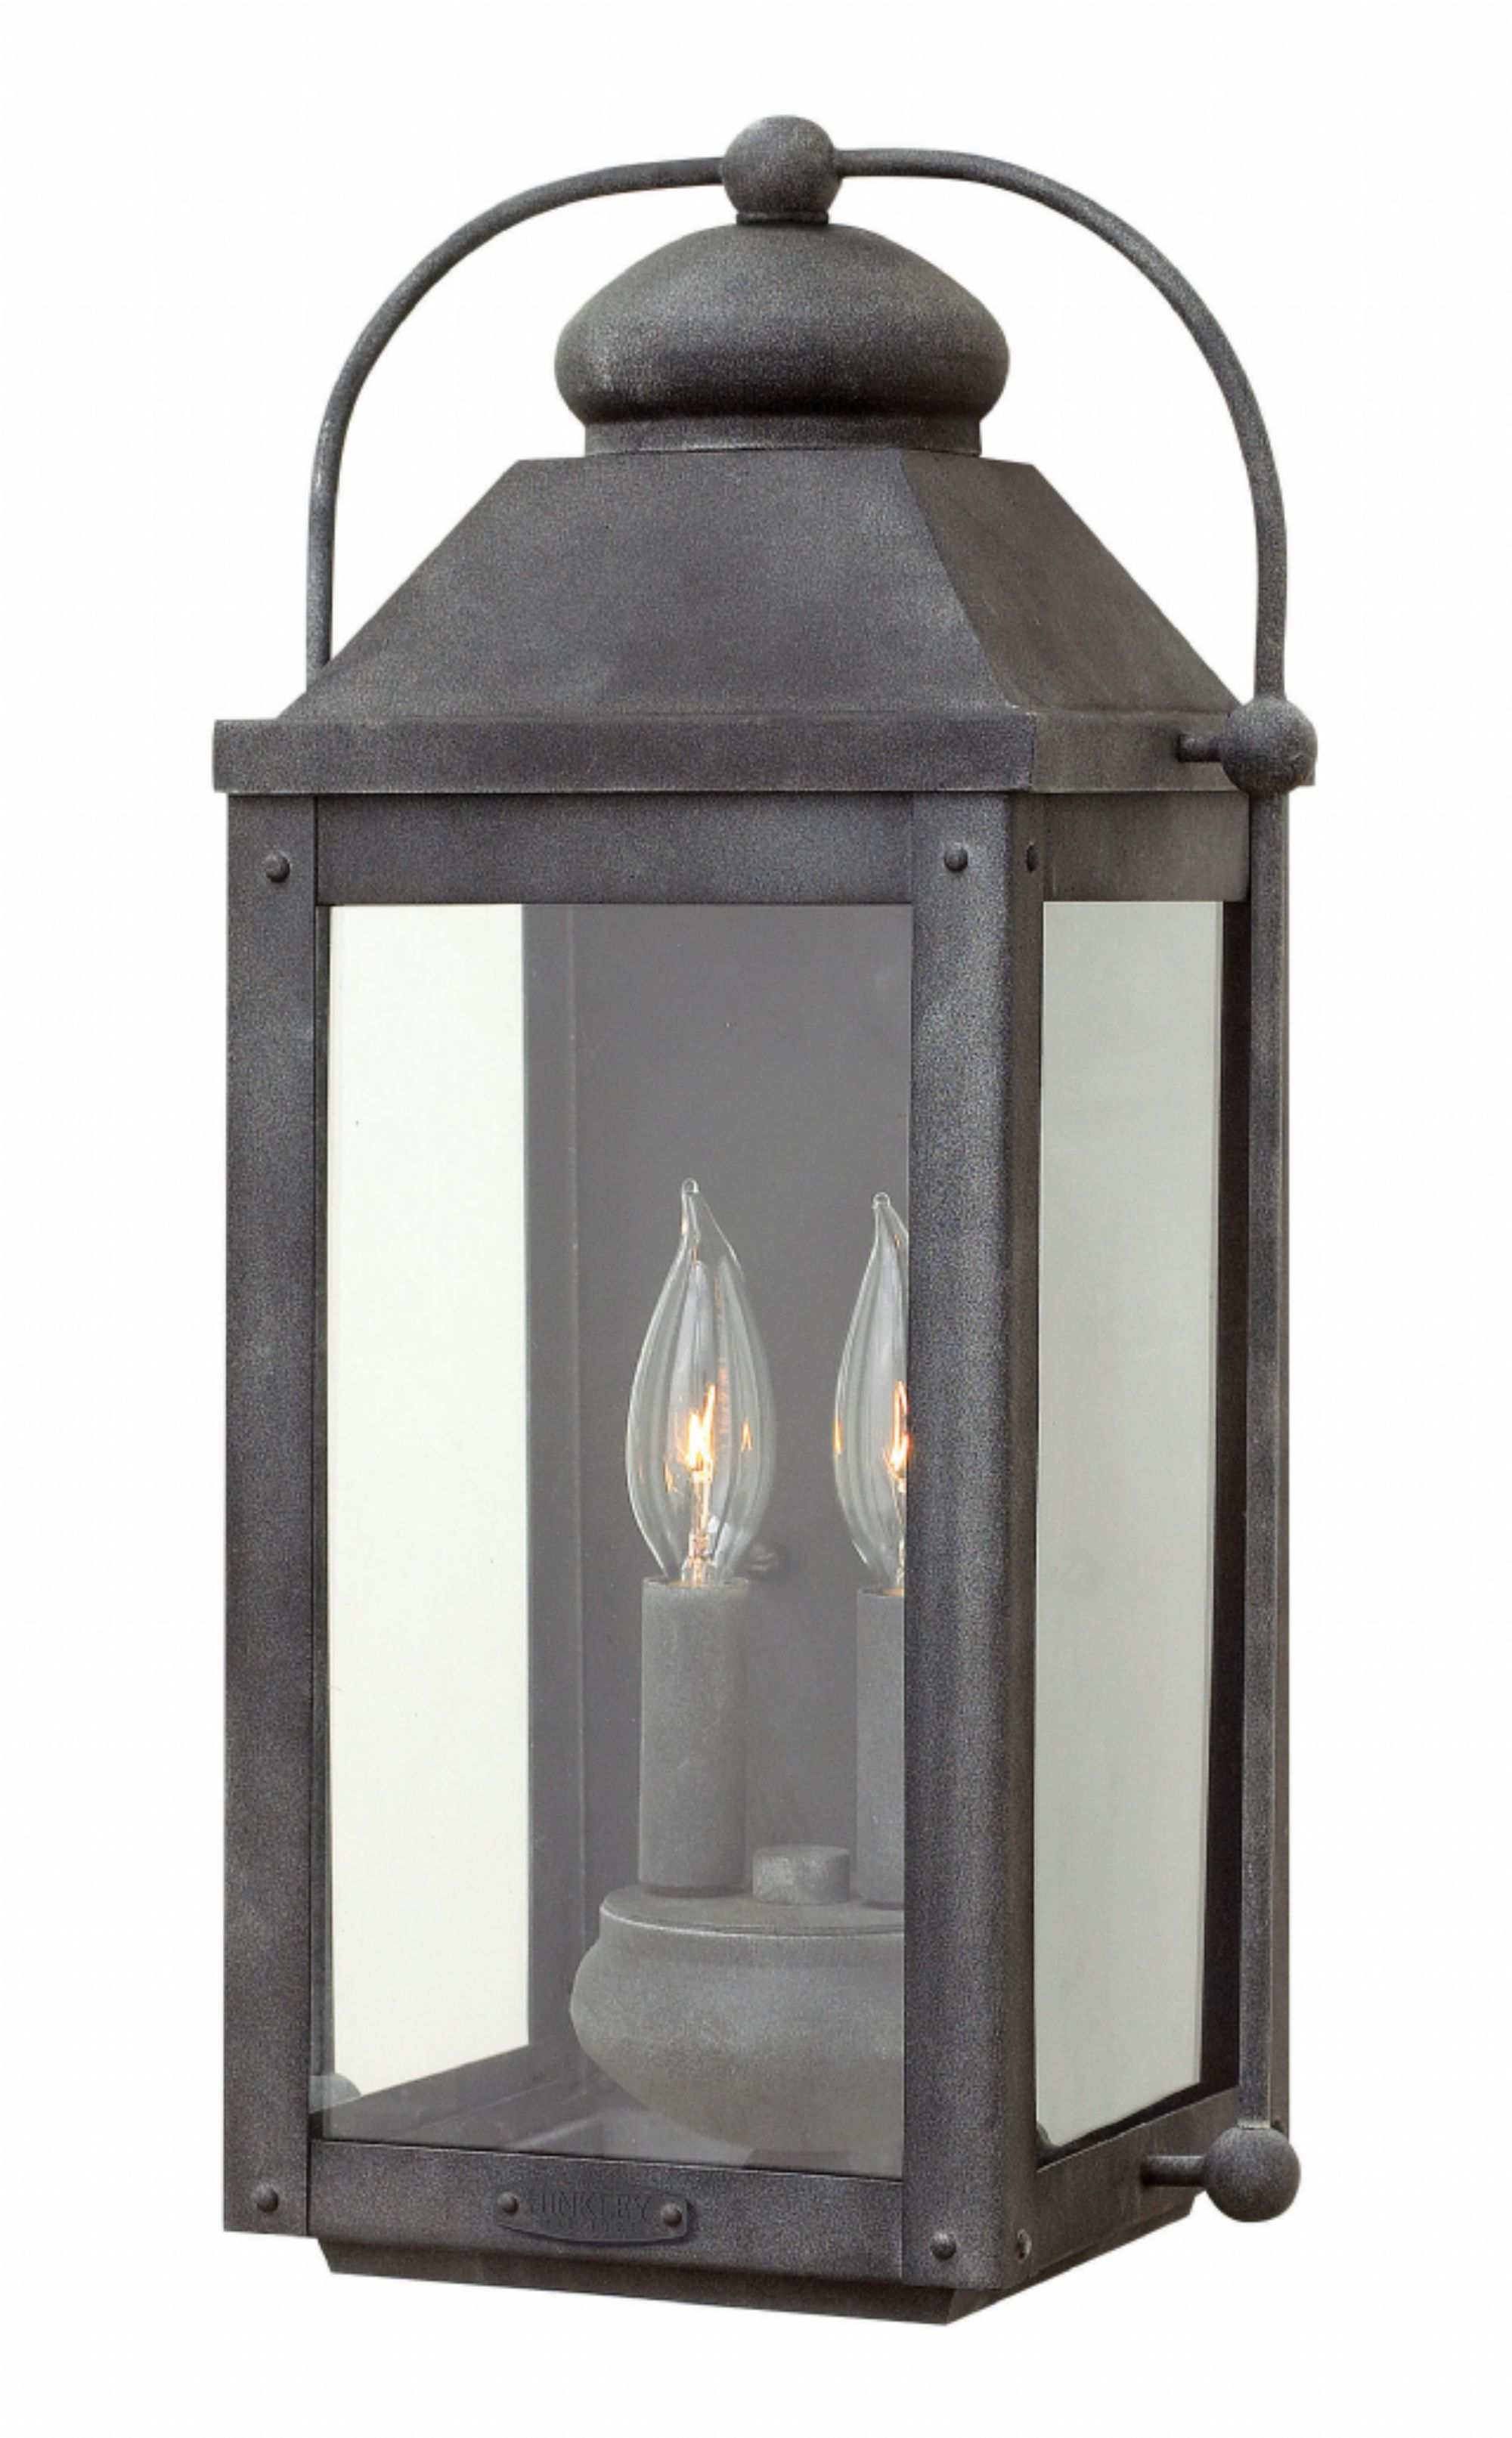 Hinkley Lighting Carries Many Aged Zinc Anchorage Lanterns Light Fixtures  That Can Be Used To Enhance